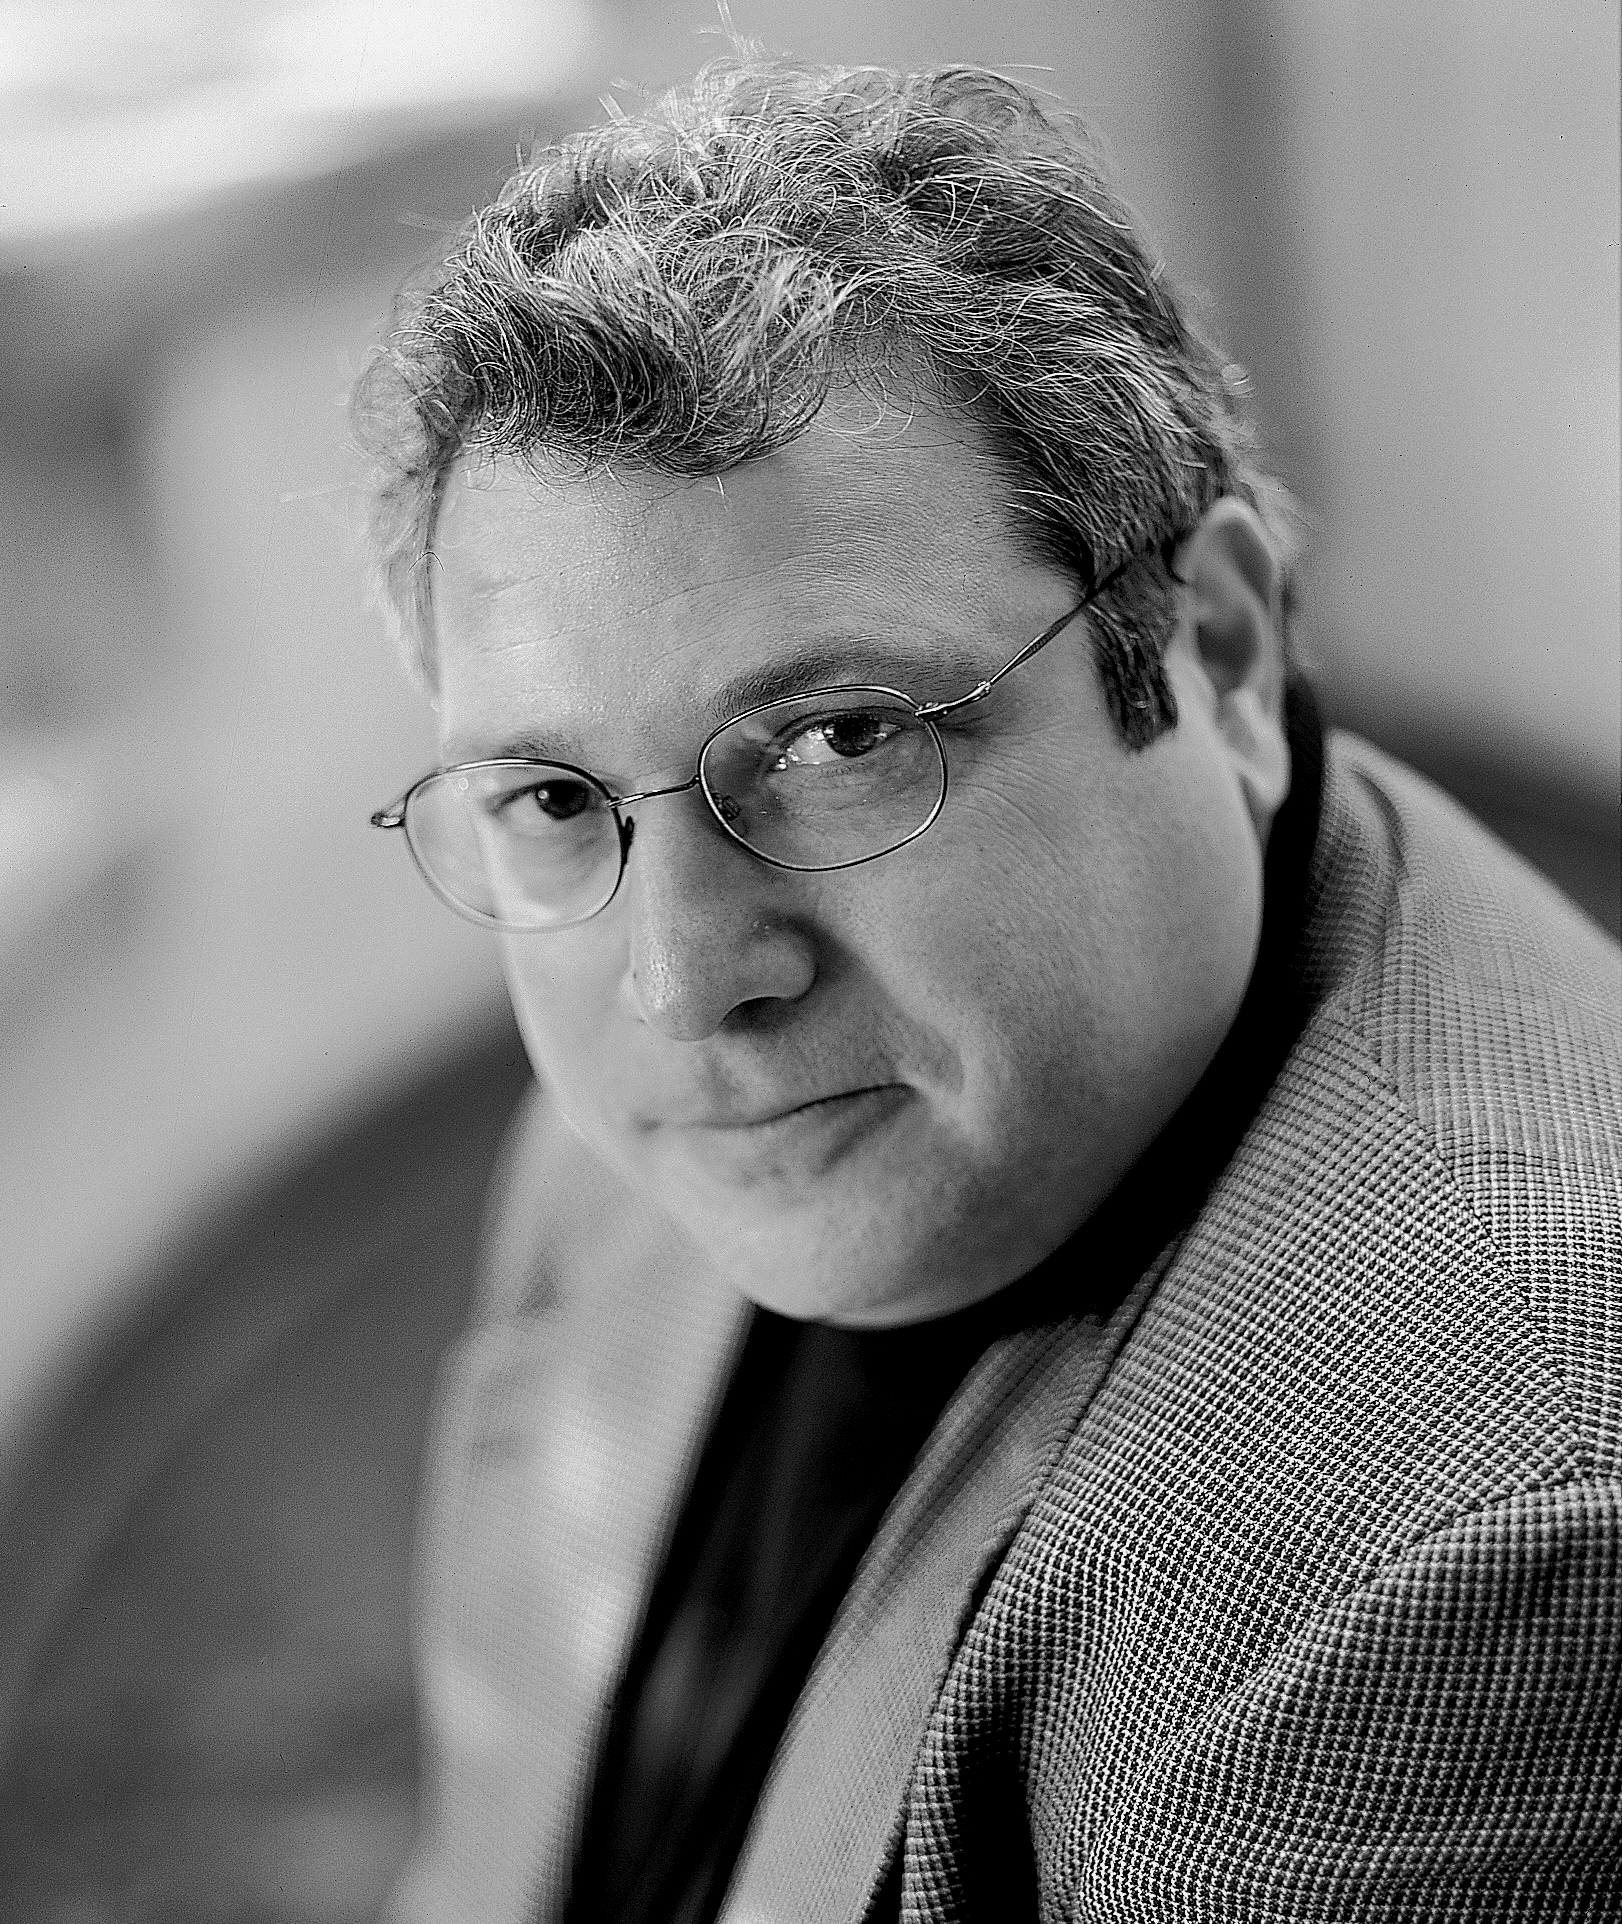 """robert kagan essay Denial is a robert kagan column and i have had great respect for robert kagan i thought his """"on power and paradise"""" essay outstanding in its analysis of."""